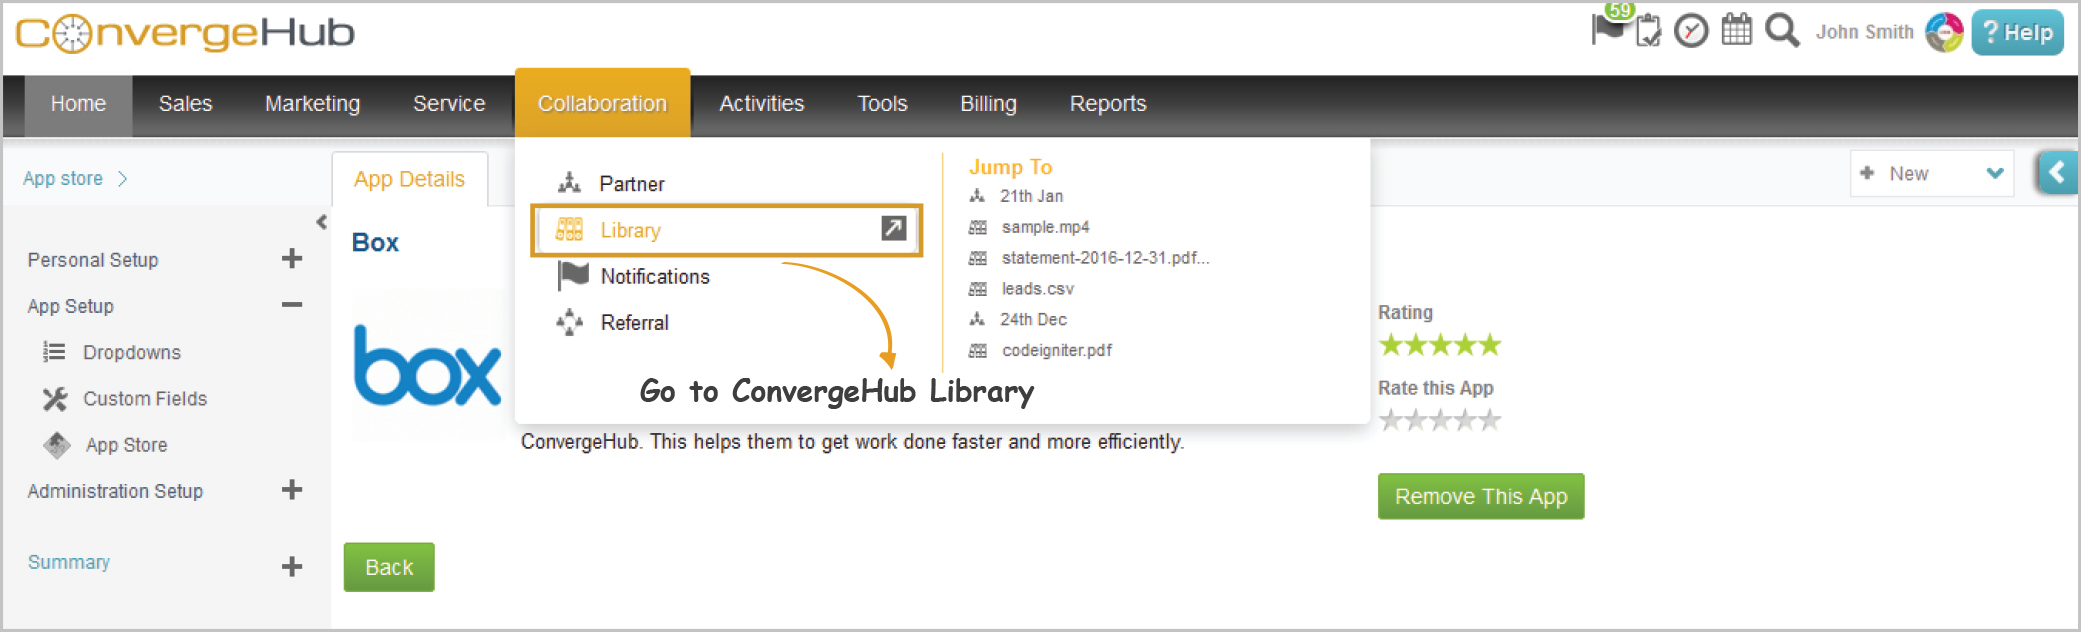 Go to ConvergeHub Library under Collaboration module